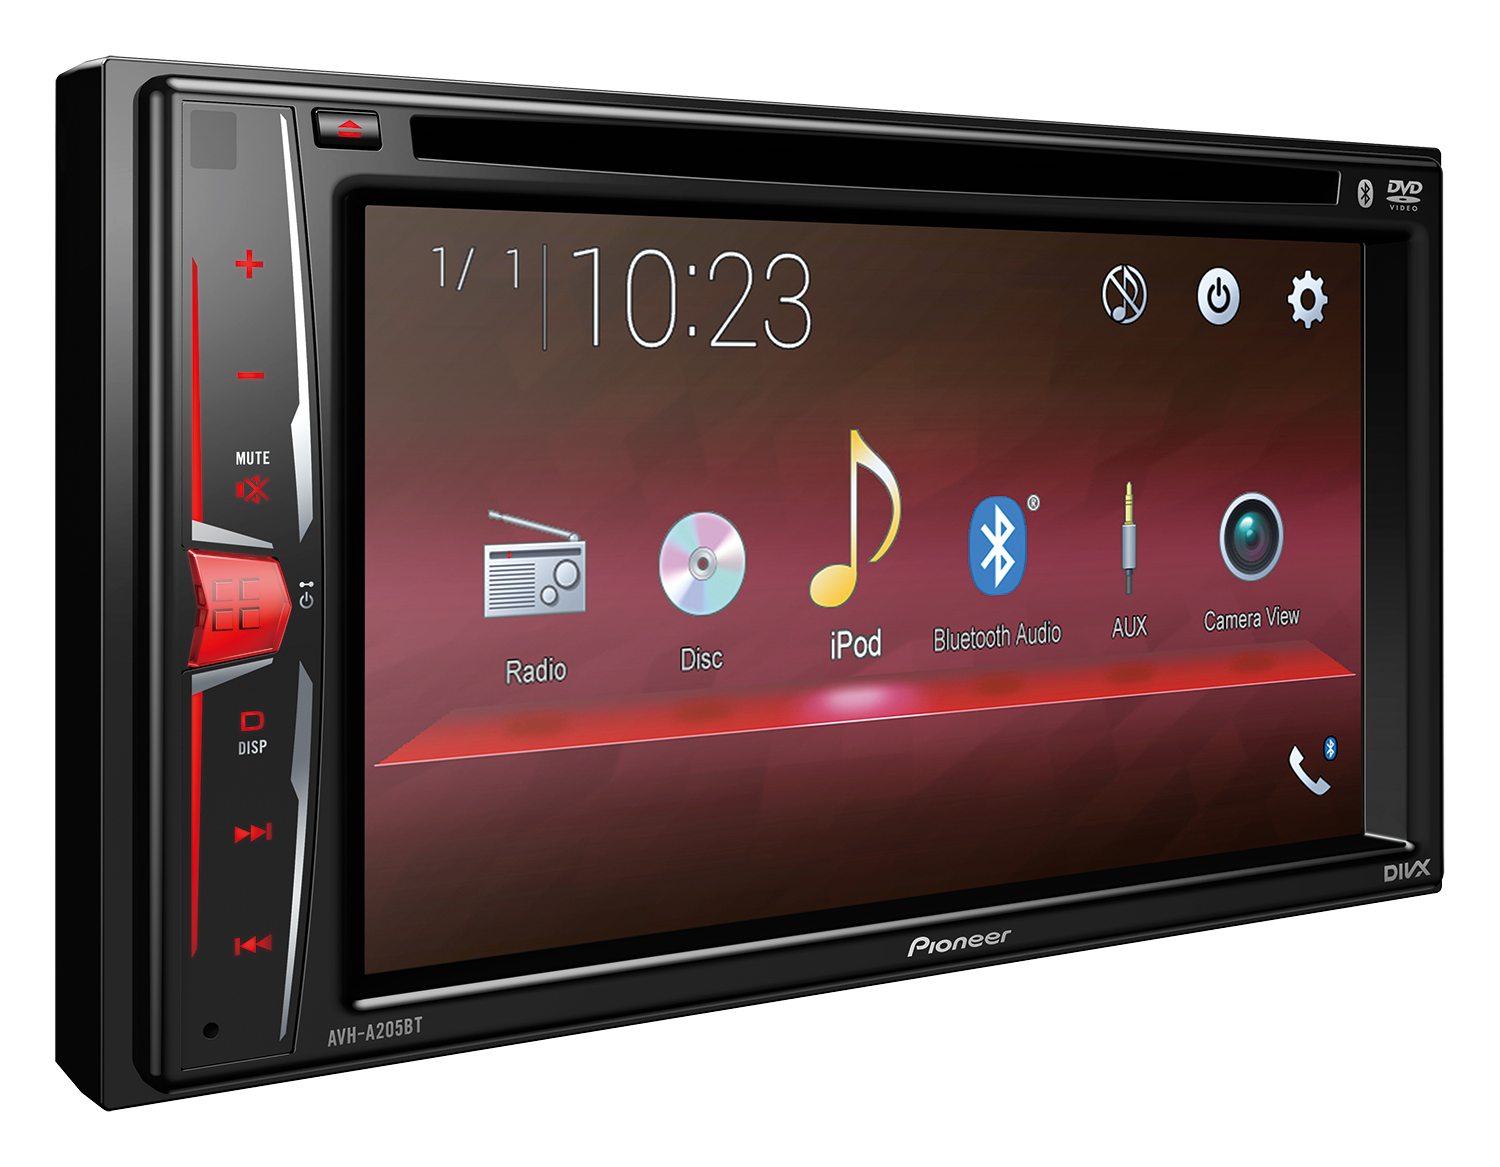 Avh A205bt Pioneer Diagram Also Kenwood Double Din Car Stereo Further 2016 Sport Cars Km763 Rcrdri Red Left A1